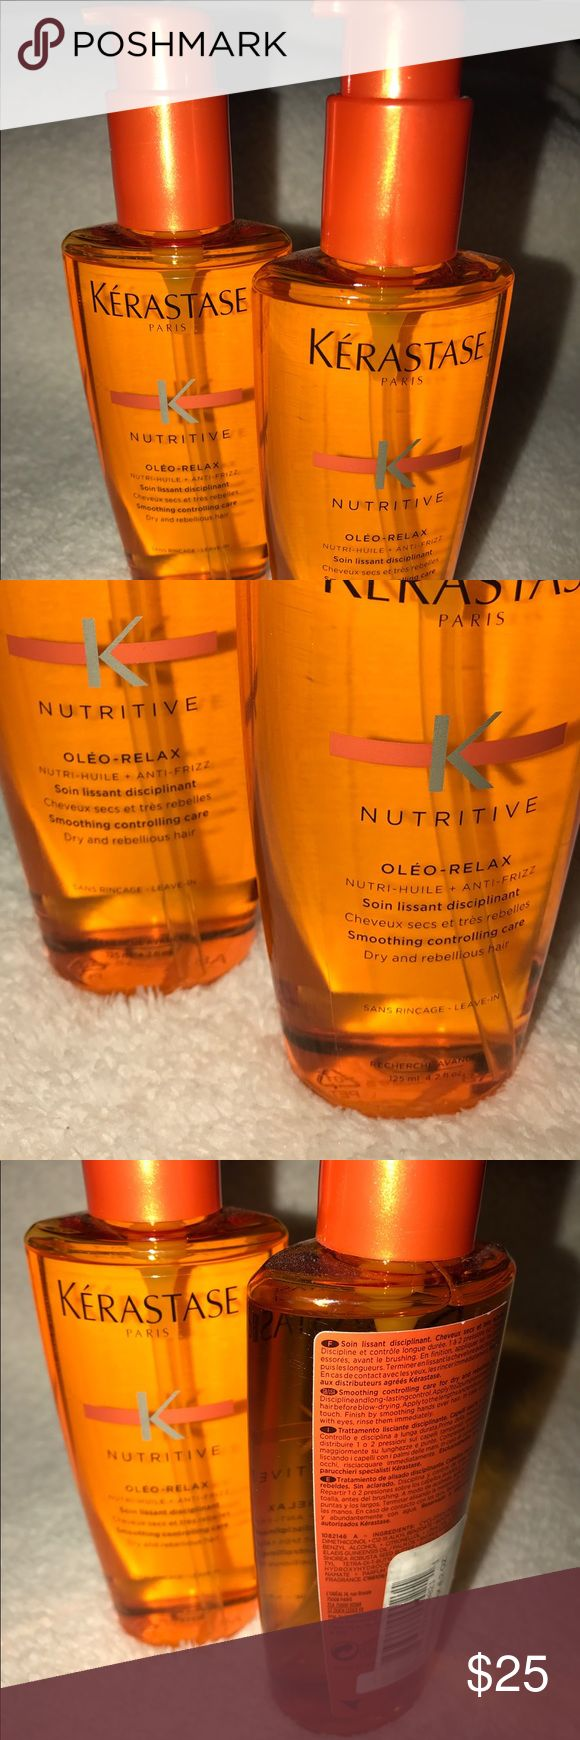 Kerastase Nutritive Oleo Relax Serum Brand new, never used. Kerastase Nutritive Oleo-Relax Smoothing Concentrate Care (Dry & Rebellious Hair). Formulated to groom dry, frizzy, unmanageable hair. This product really works. Leaves your hair feeling soft, manageable and shiny. Accessories Hair Accessories